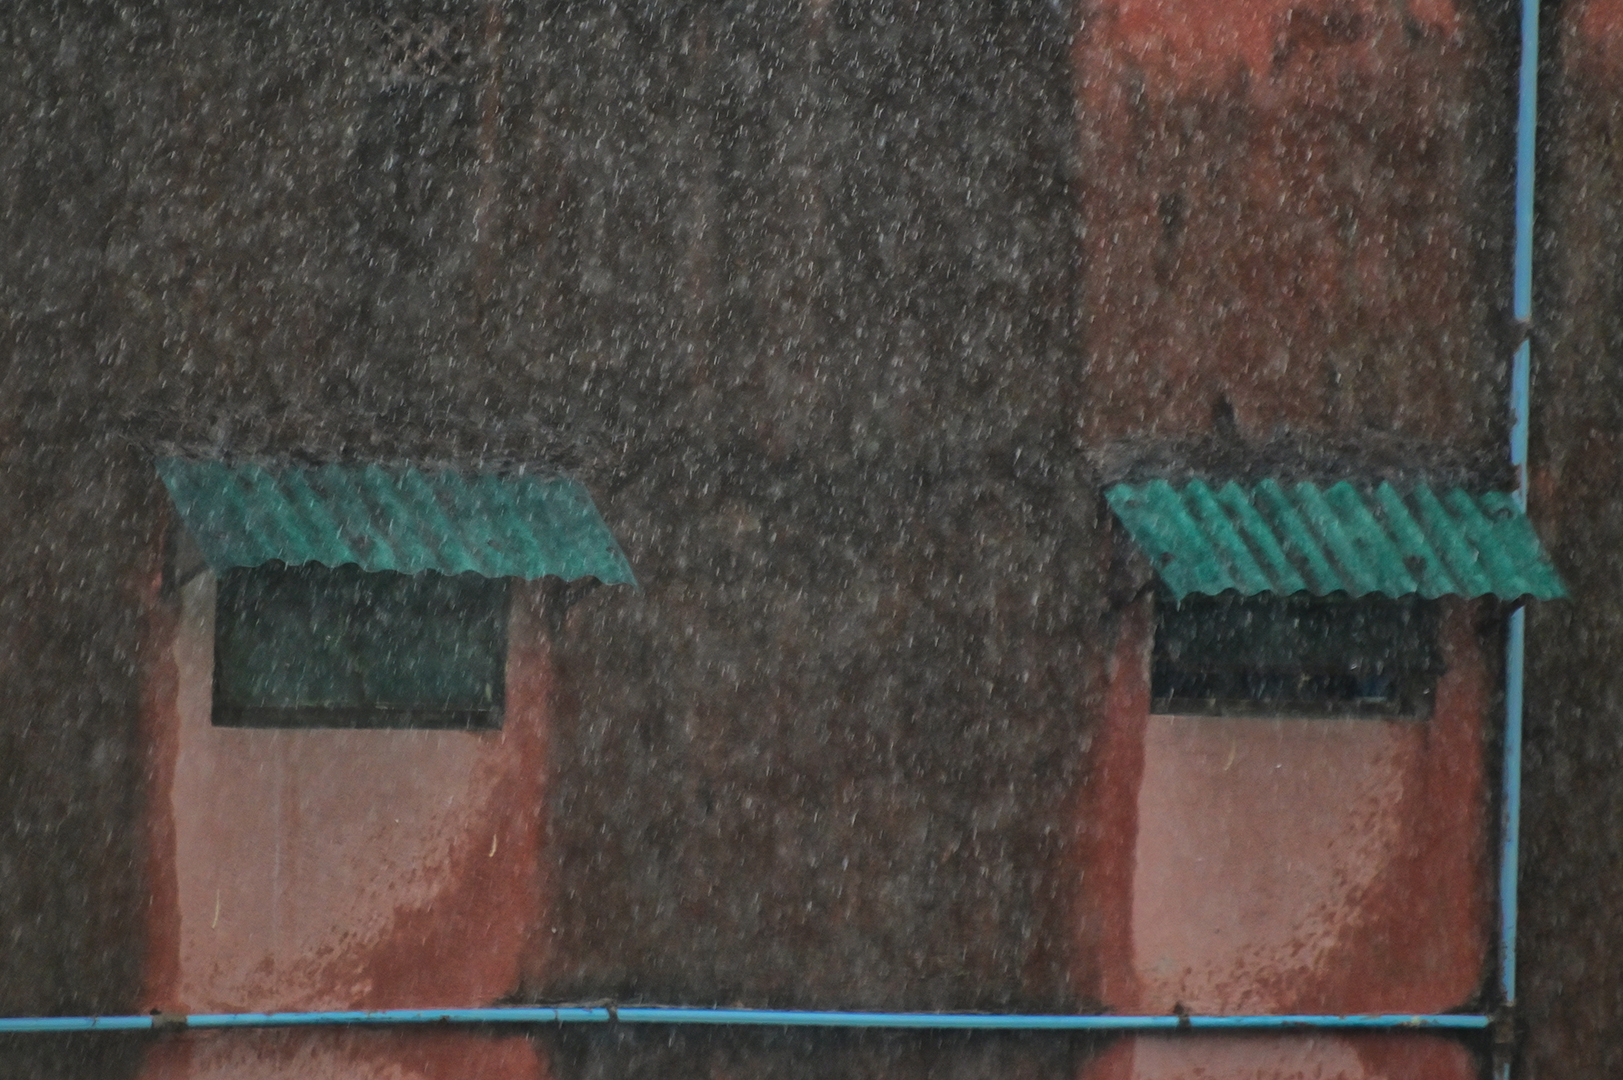 Shot was taken from my window in a rainy day. The two windows, green sheds and the water pipes makes the picture like pastel drawing painting.